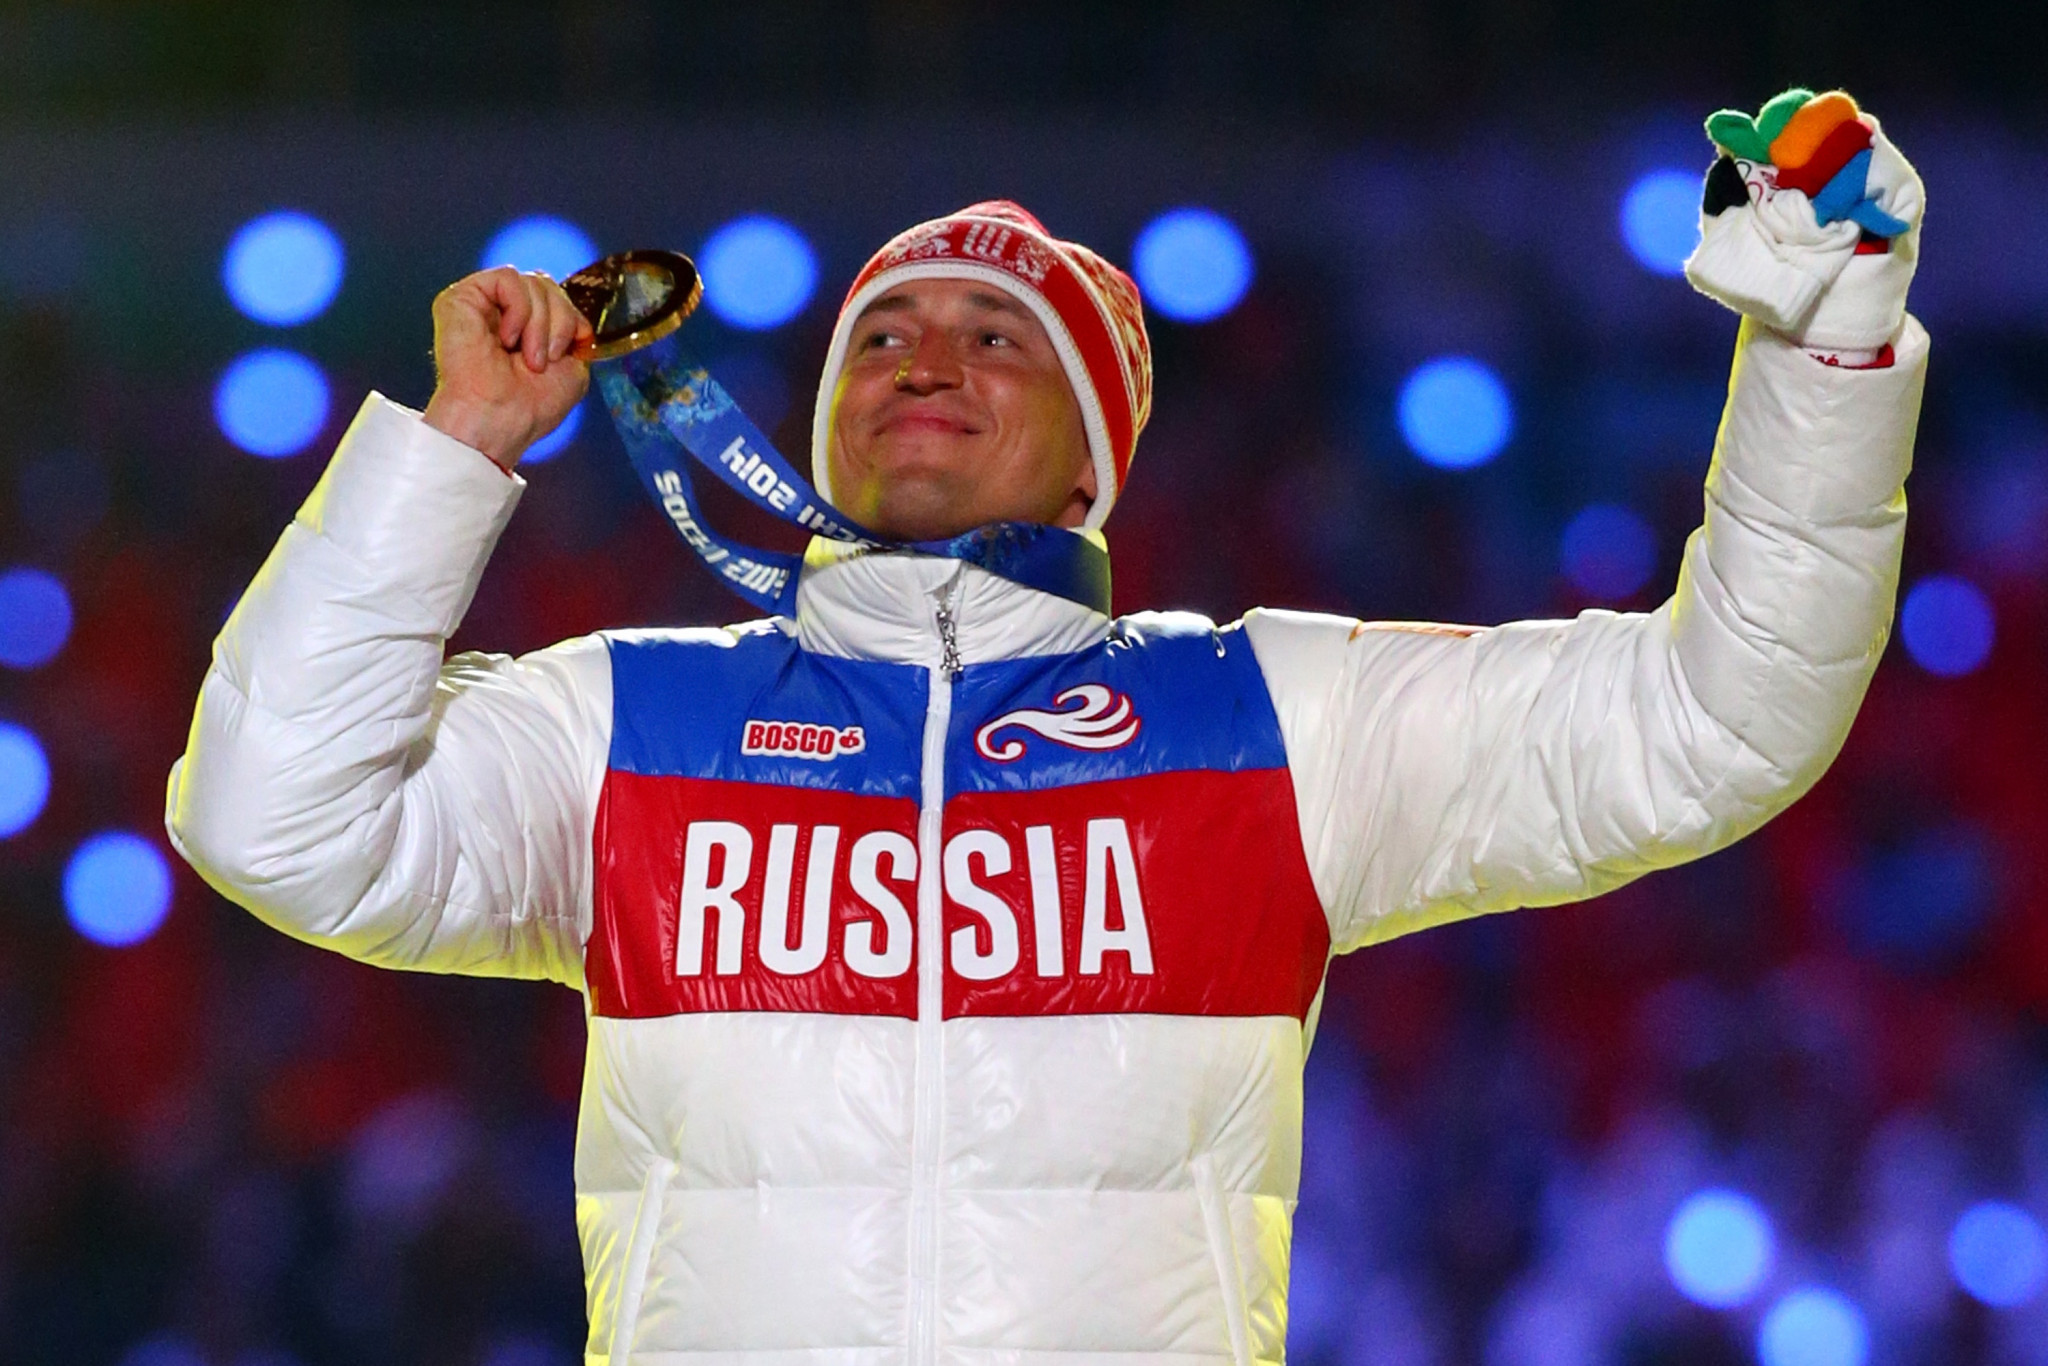 Alexander Legkov celebrates Olympic gold at Sochi 2014, a medal which was taken from him before being reinstated ©Getty Images